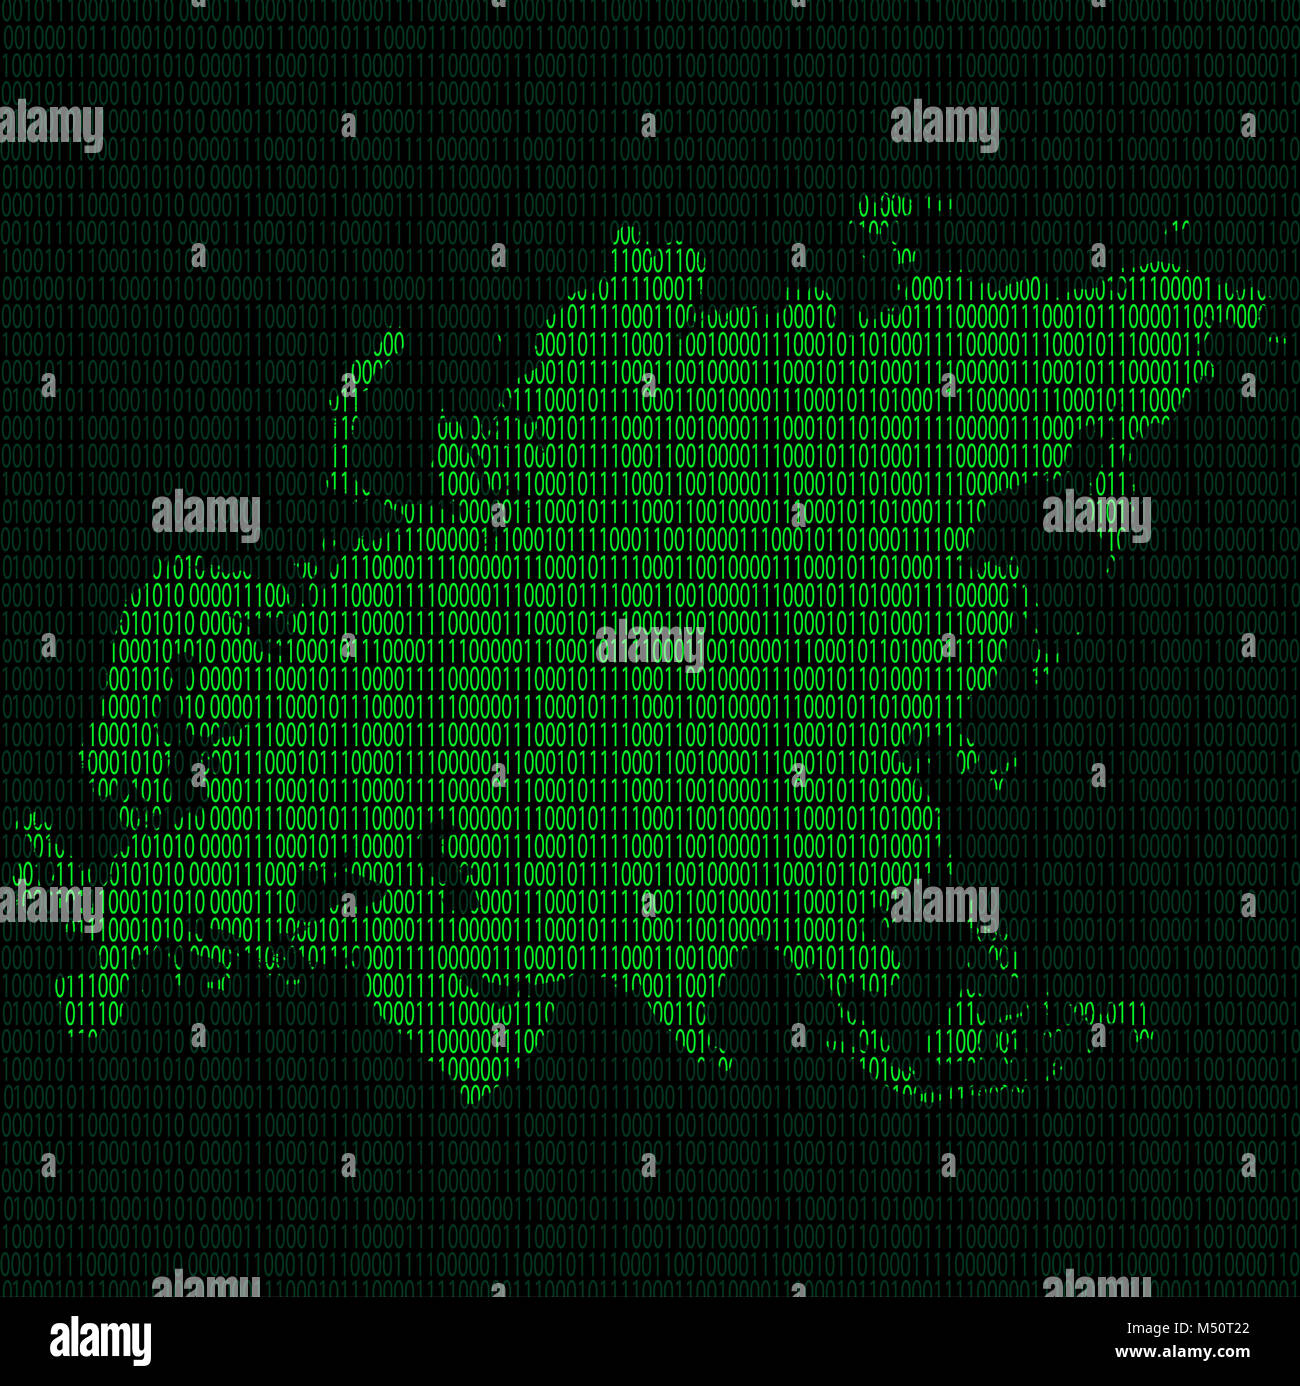 Silhouette of Eurasia from binary digits - Stock Image